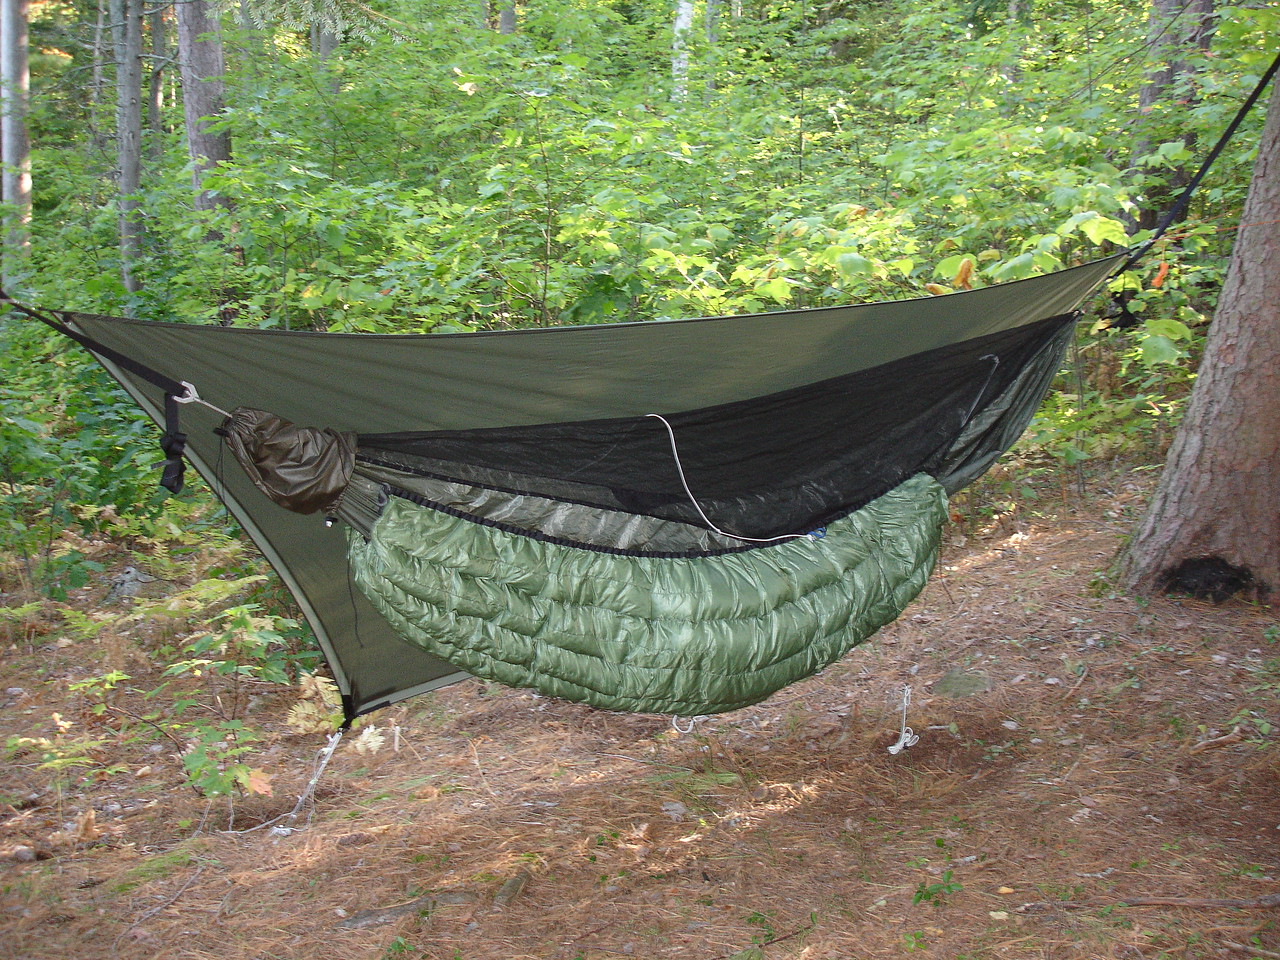 The under-quilt keeps your backside warm when you are floating in cold air.